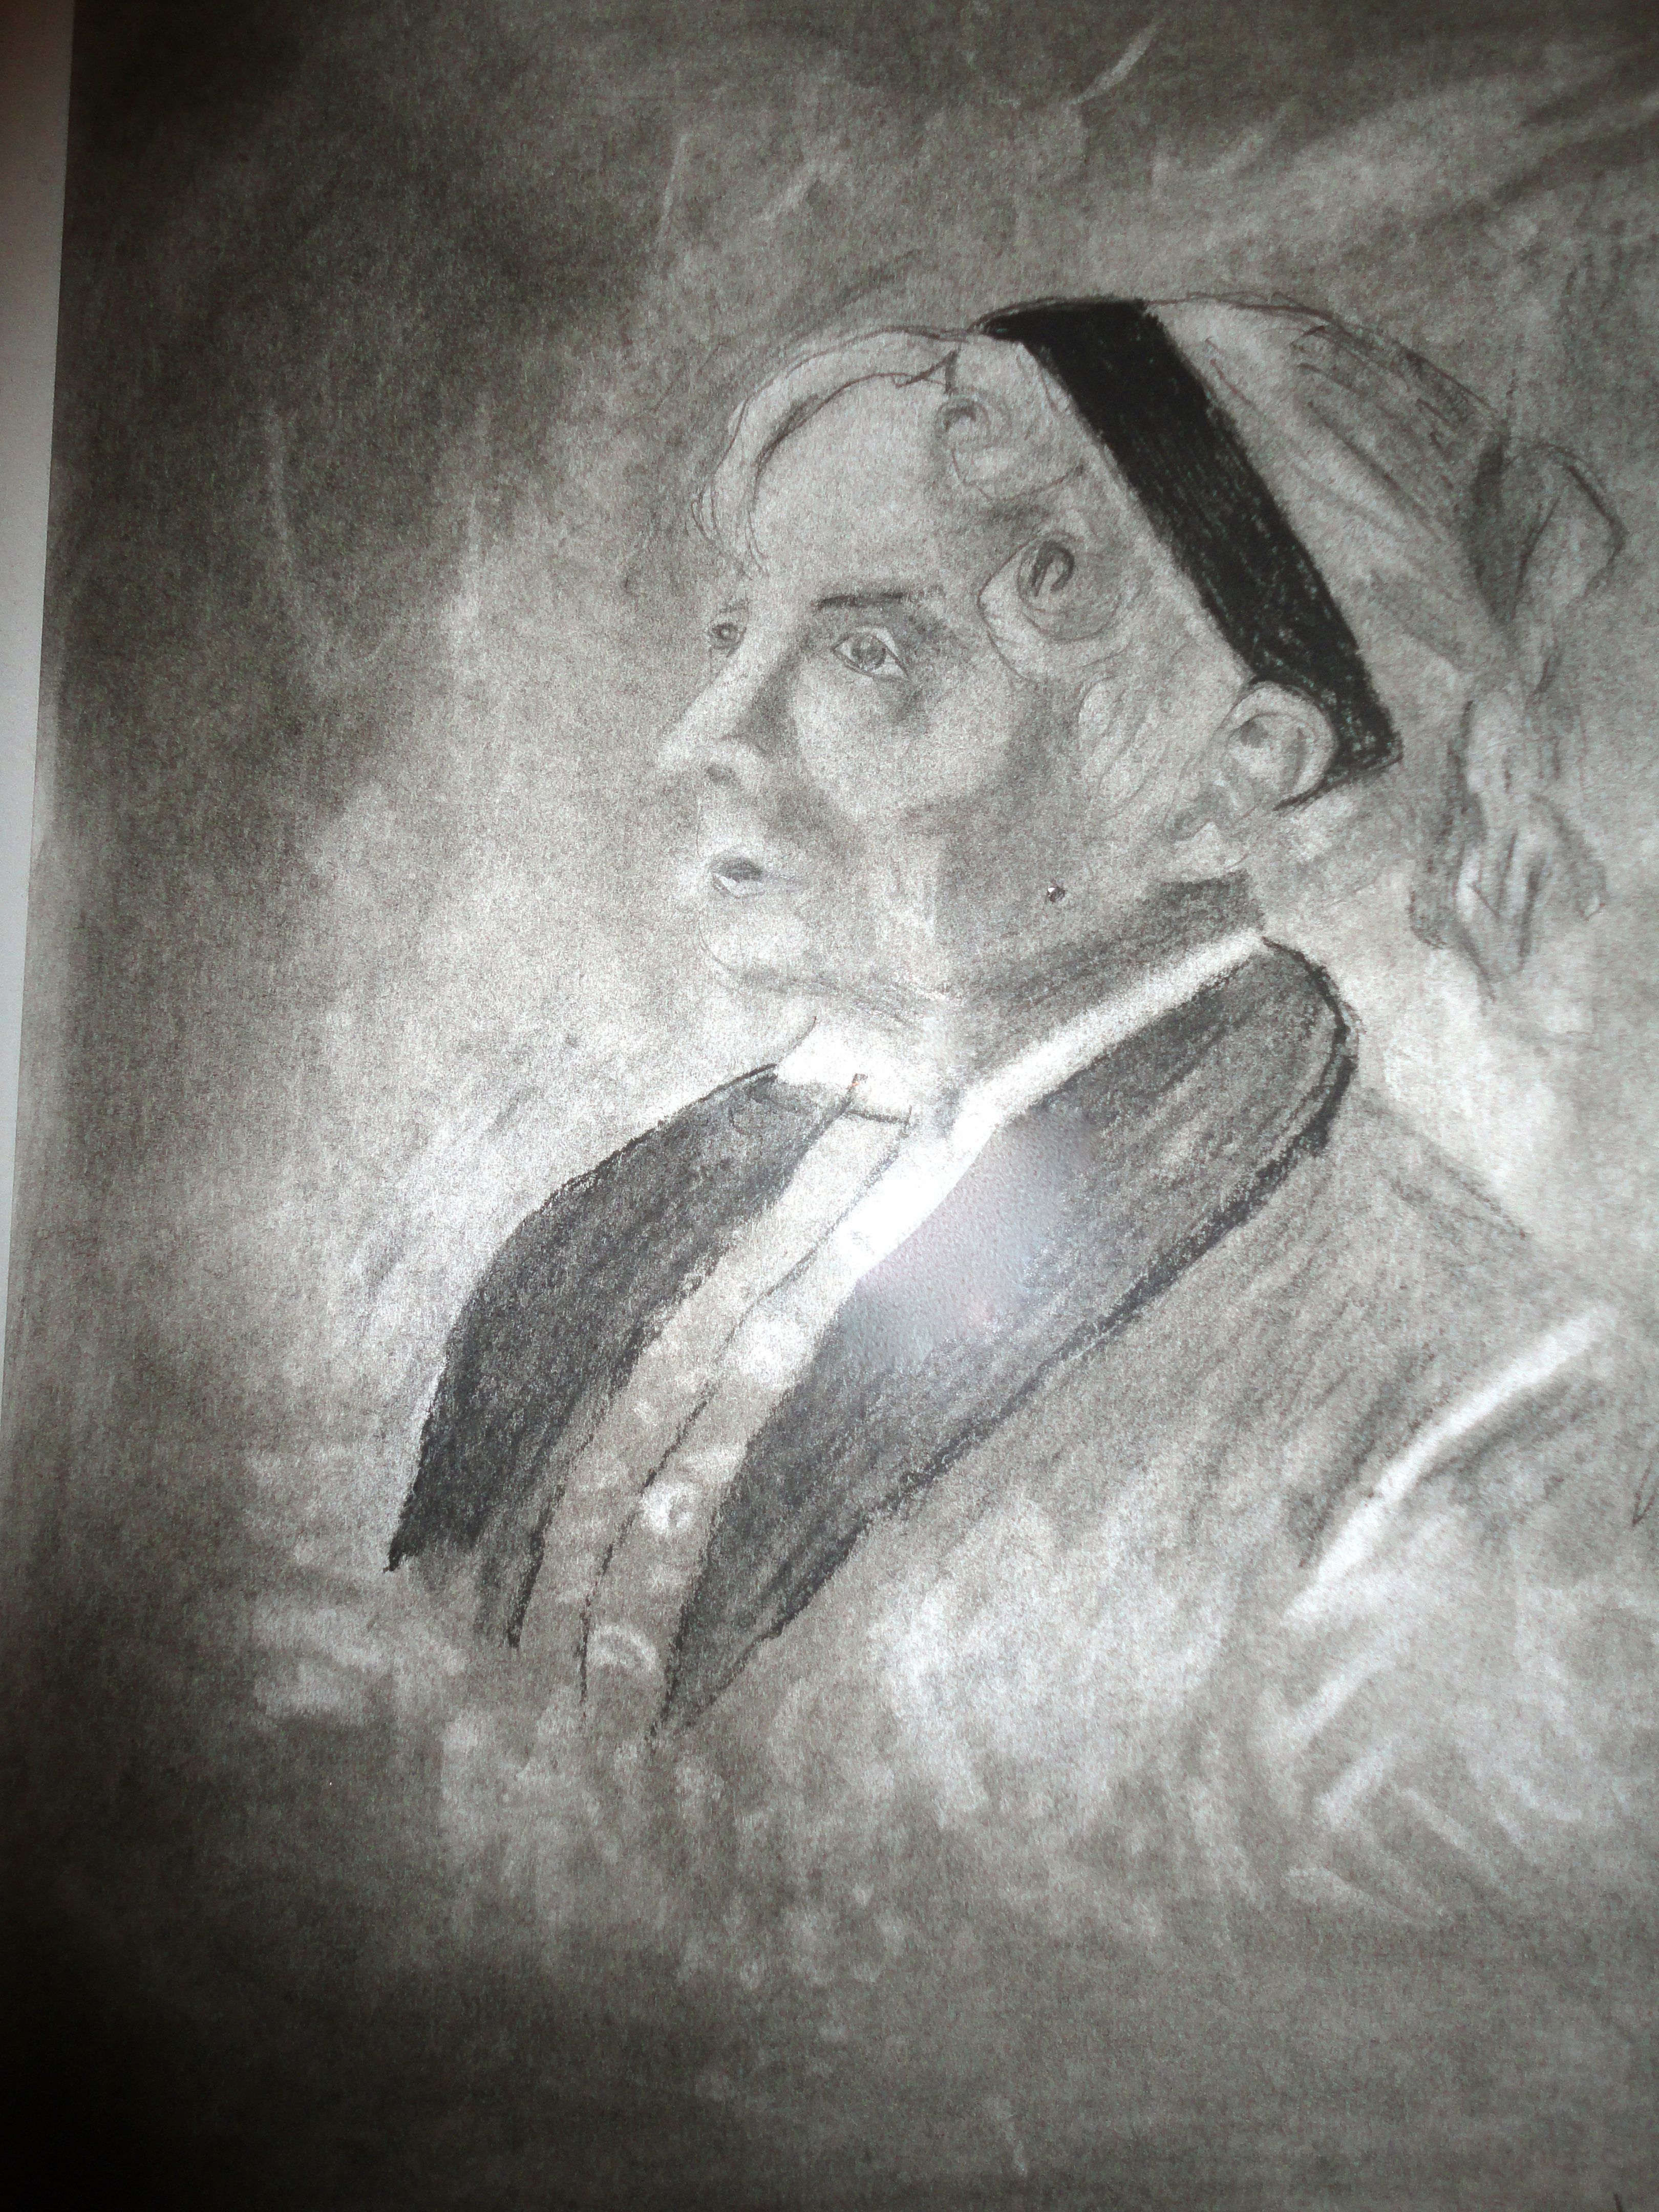 Charcoal Portrait Using Graphite Powder Erasure And Negative Space Concepts To Show Highlight